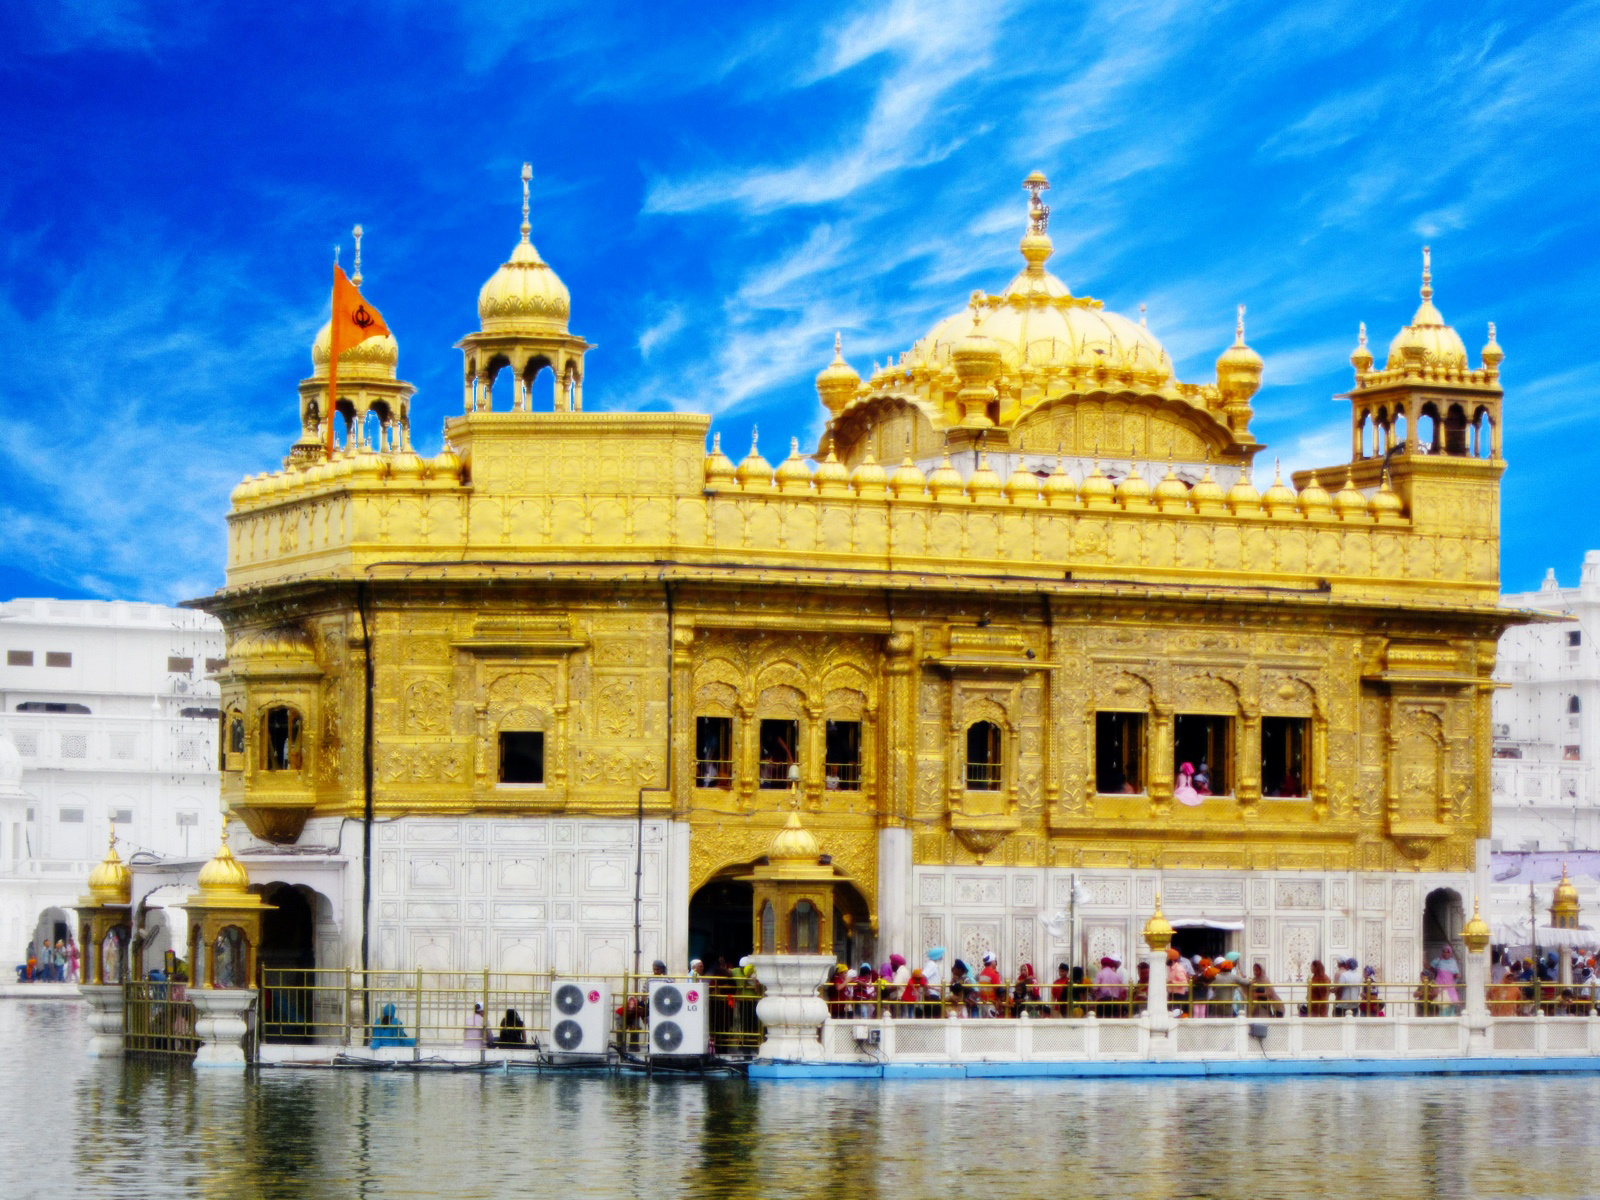 Essay on historical place golden temple